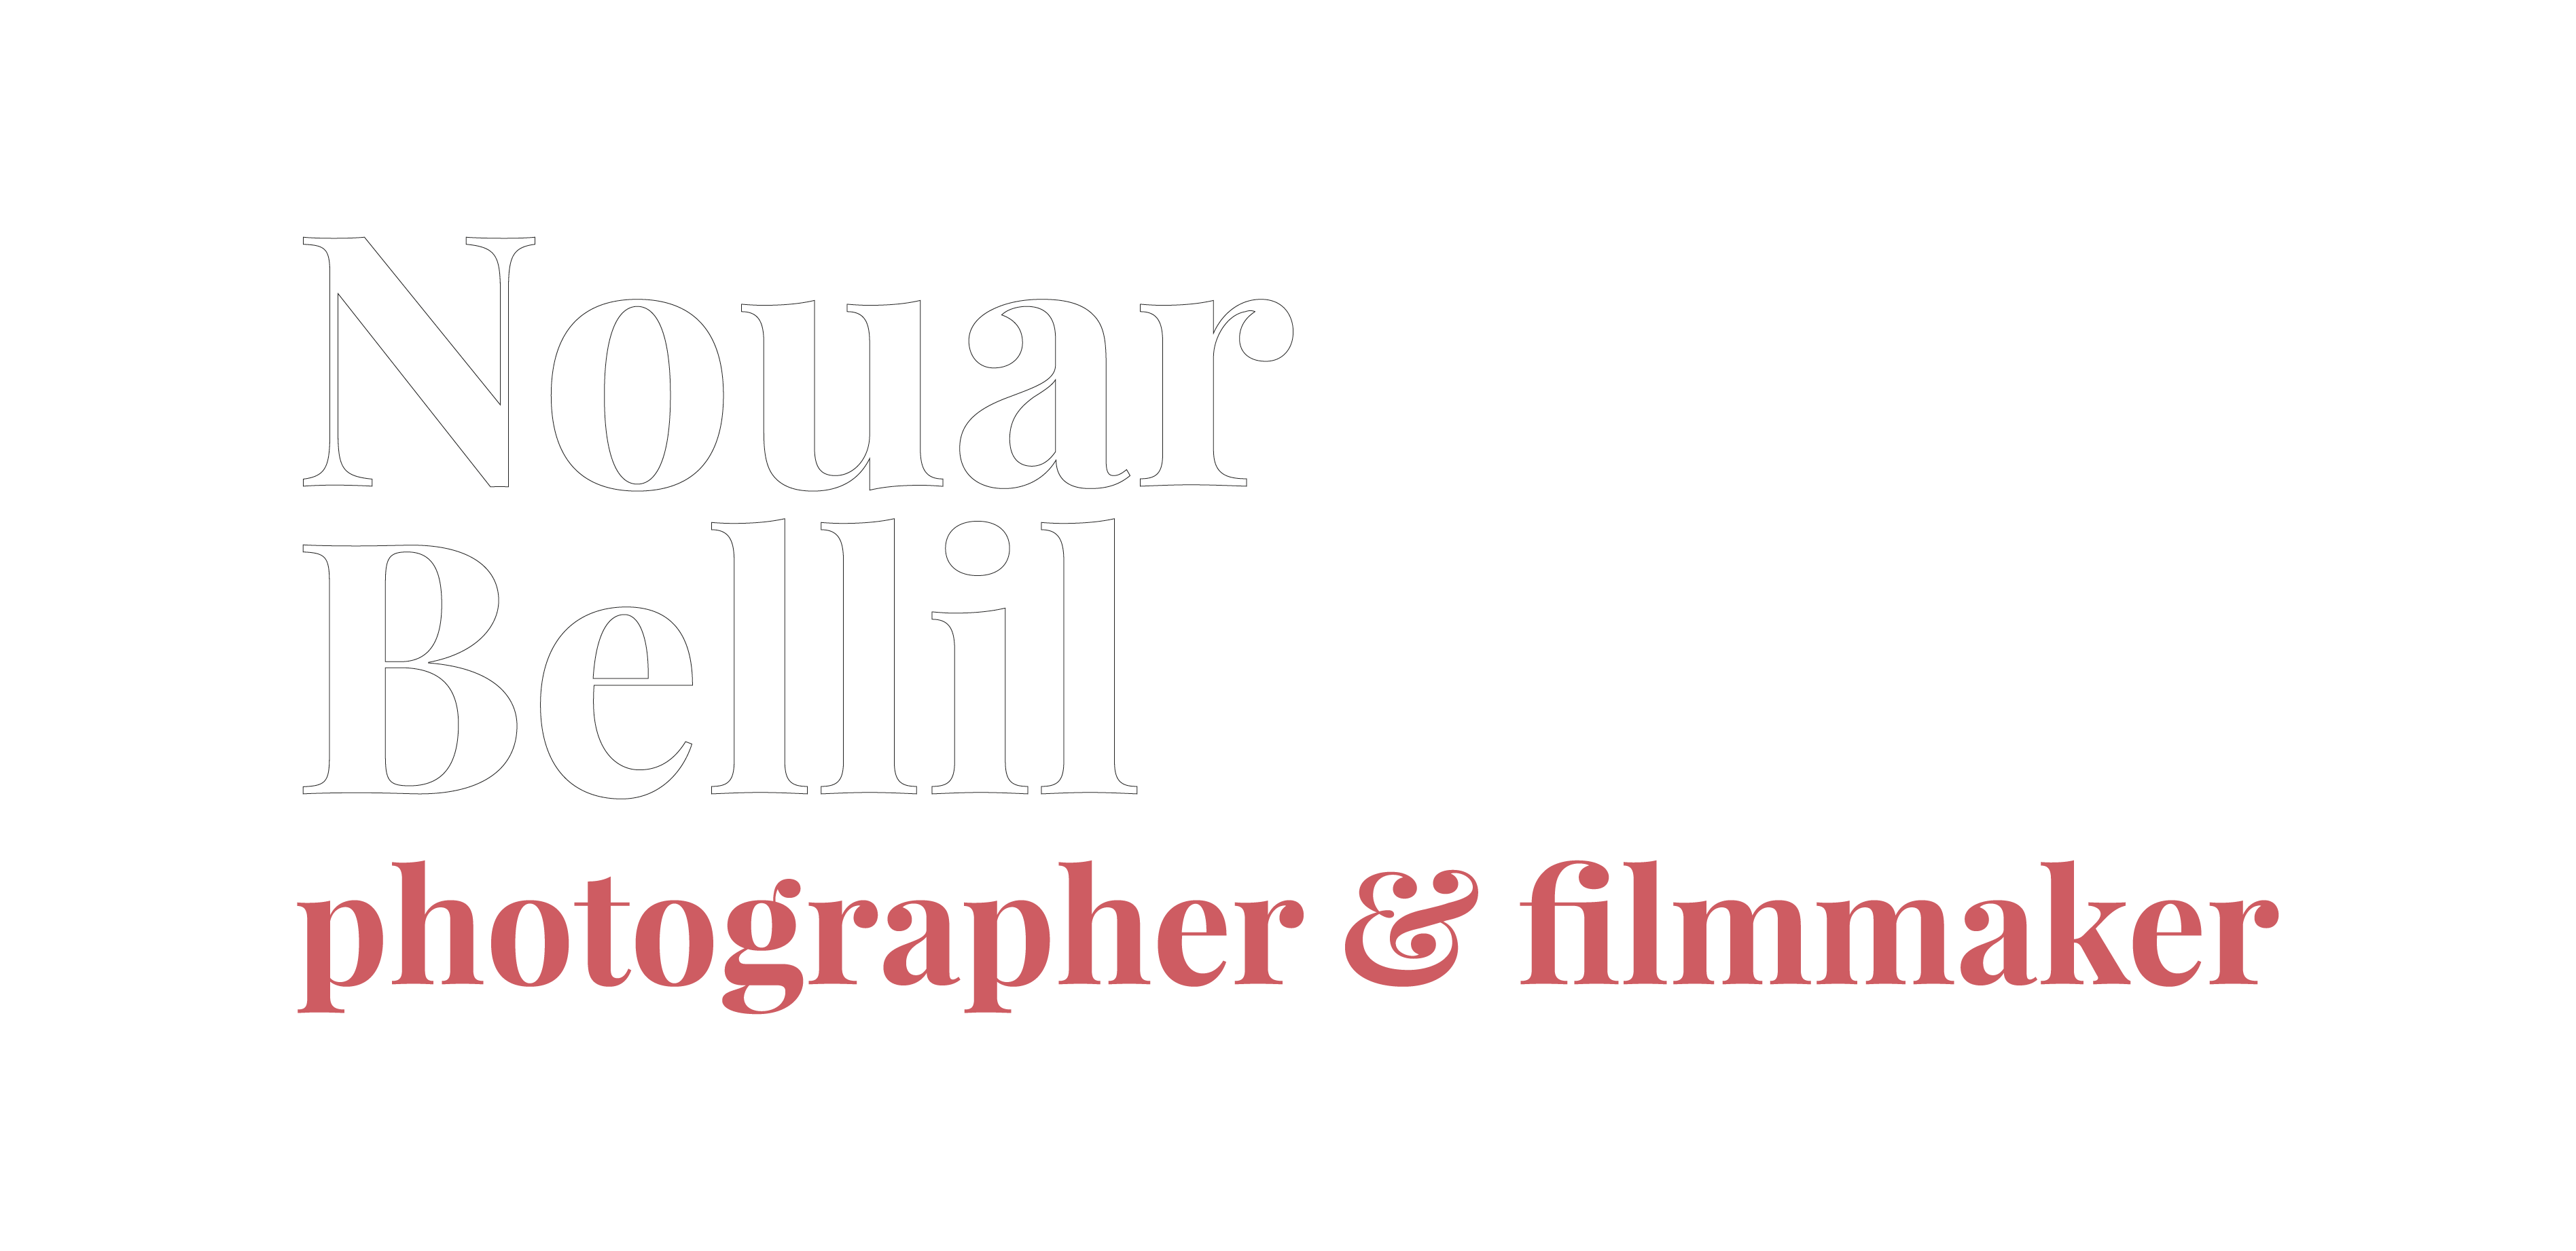 Nouar Bellil | Photographer & Filmmaker